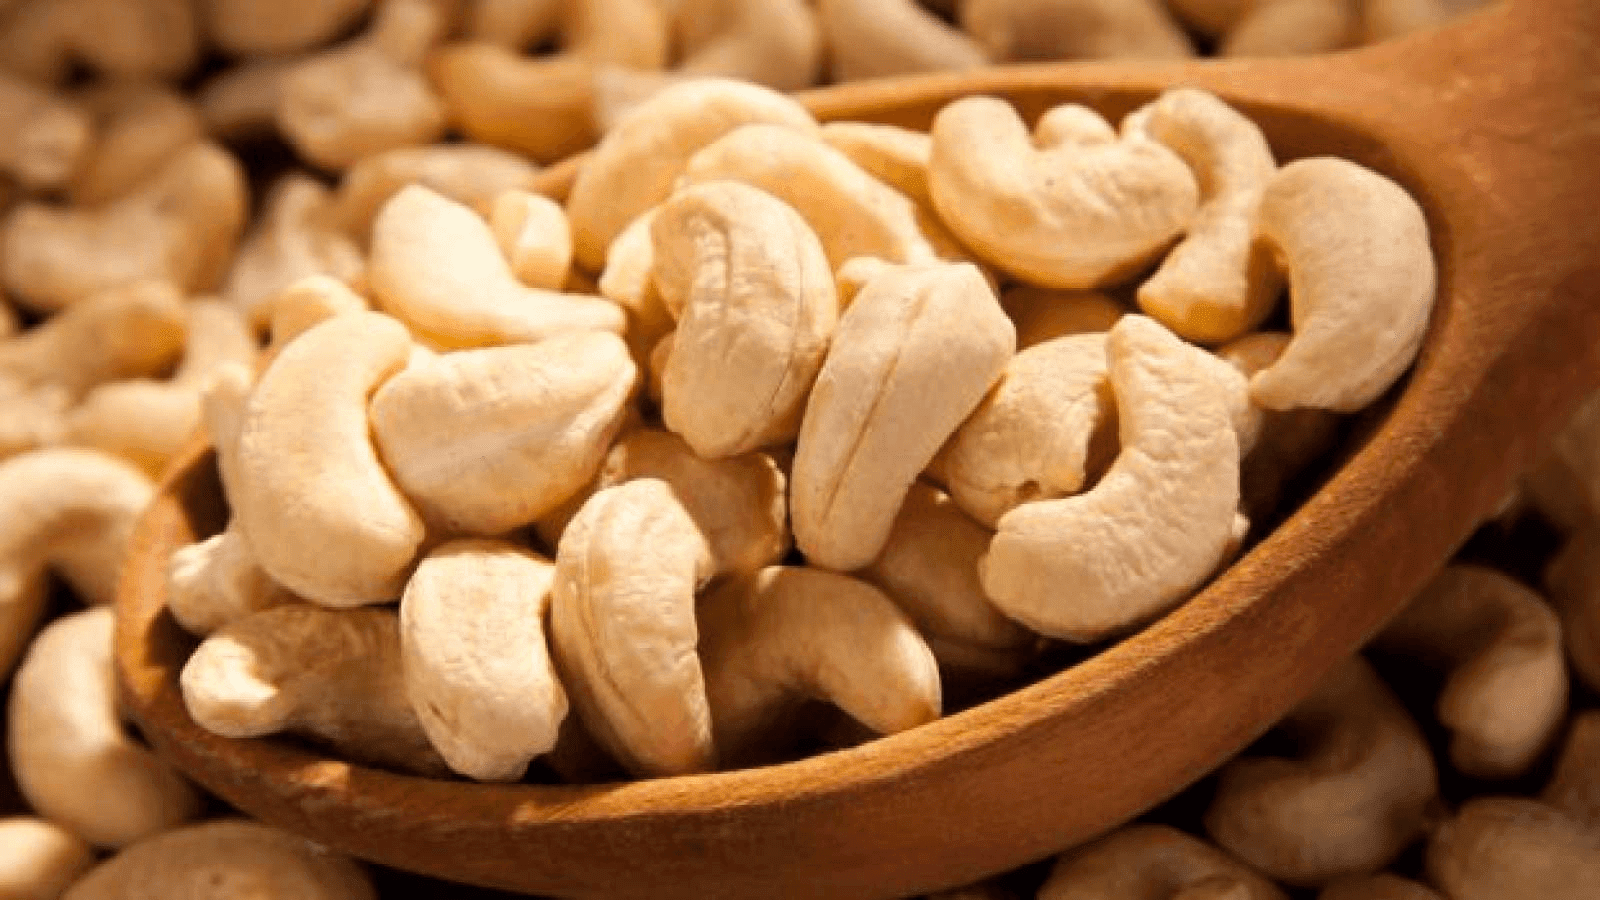 Health benefits of having cashews